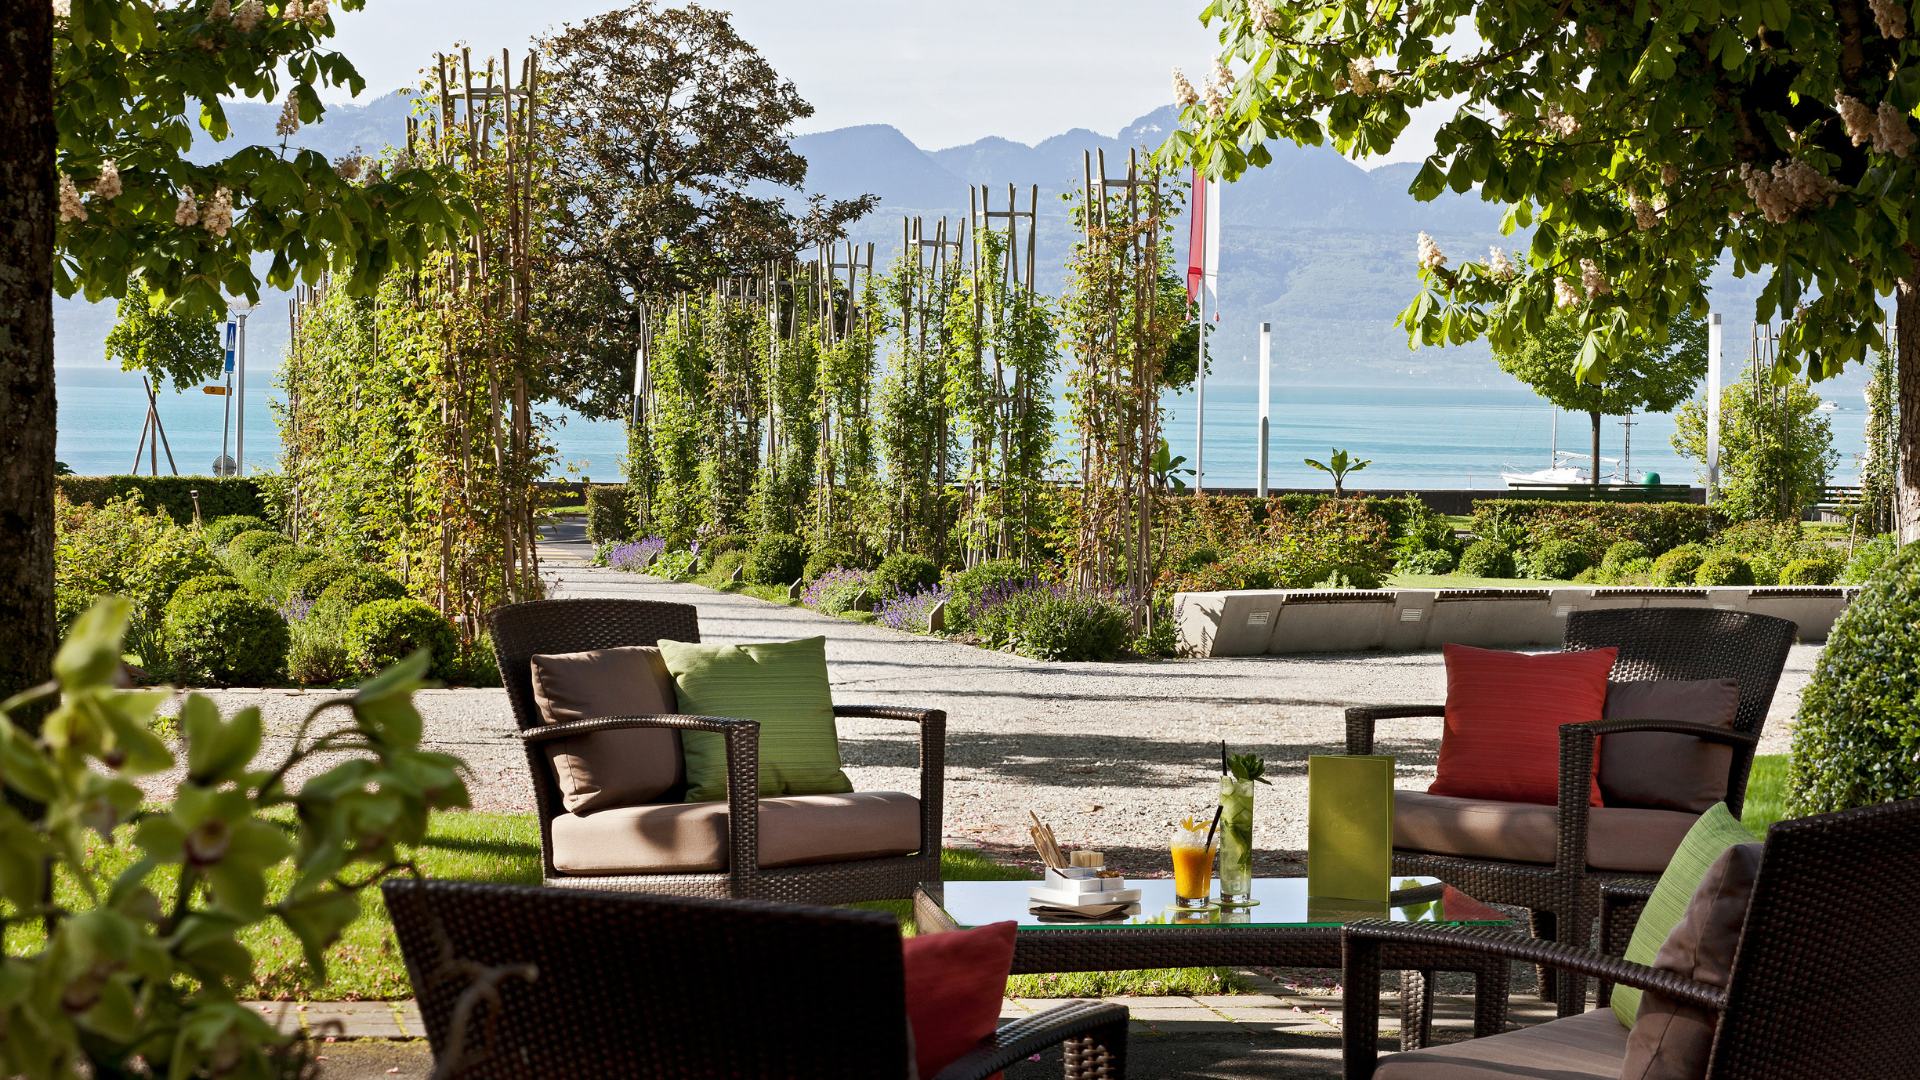 Bar Für Terrasse Beau Rivage Palace Hotel 5 Star Hotel Bar Lausanne Switzerland